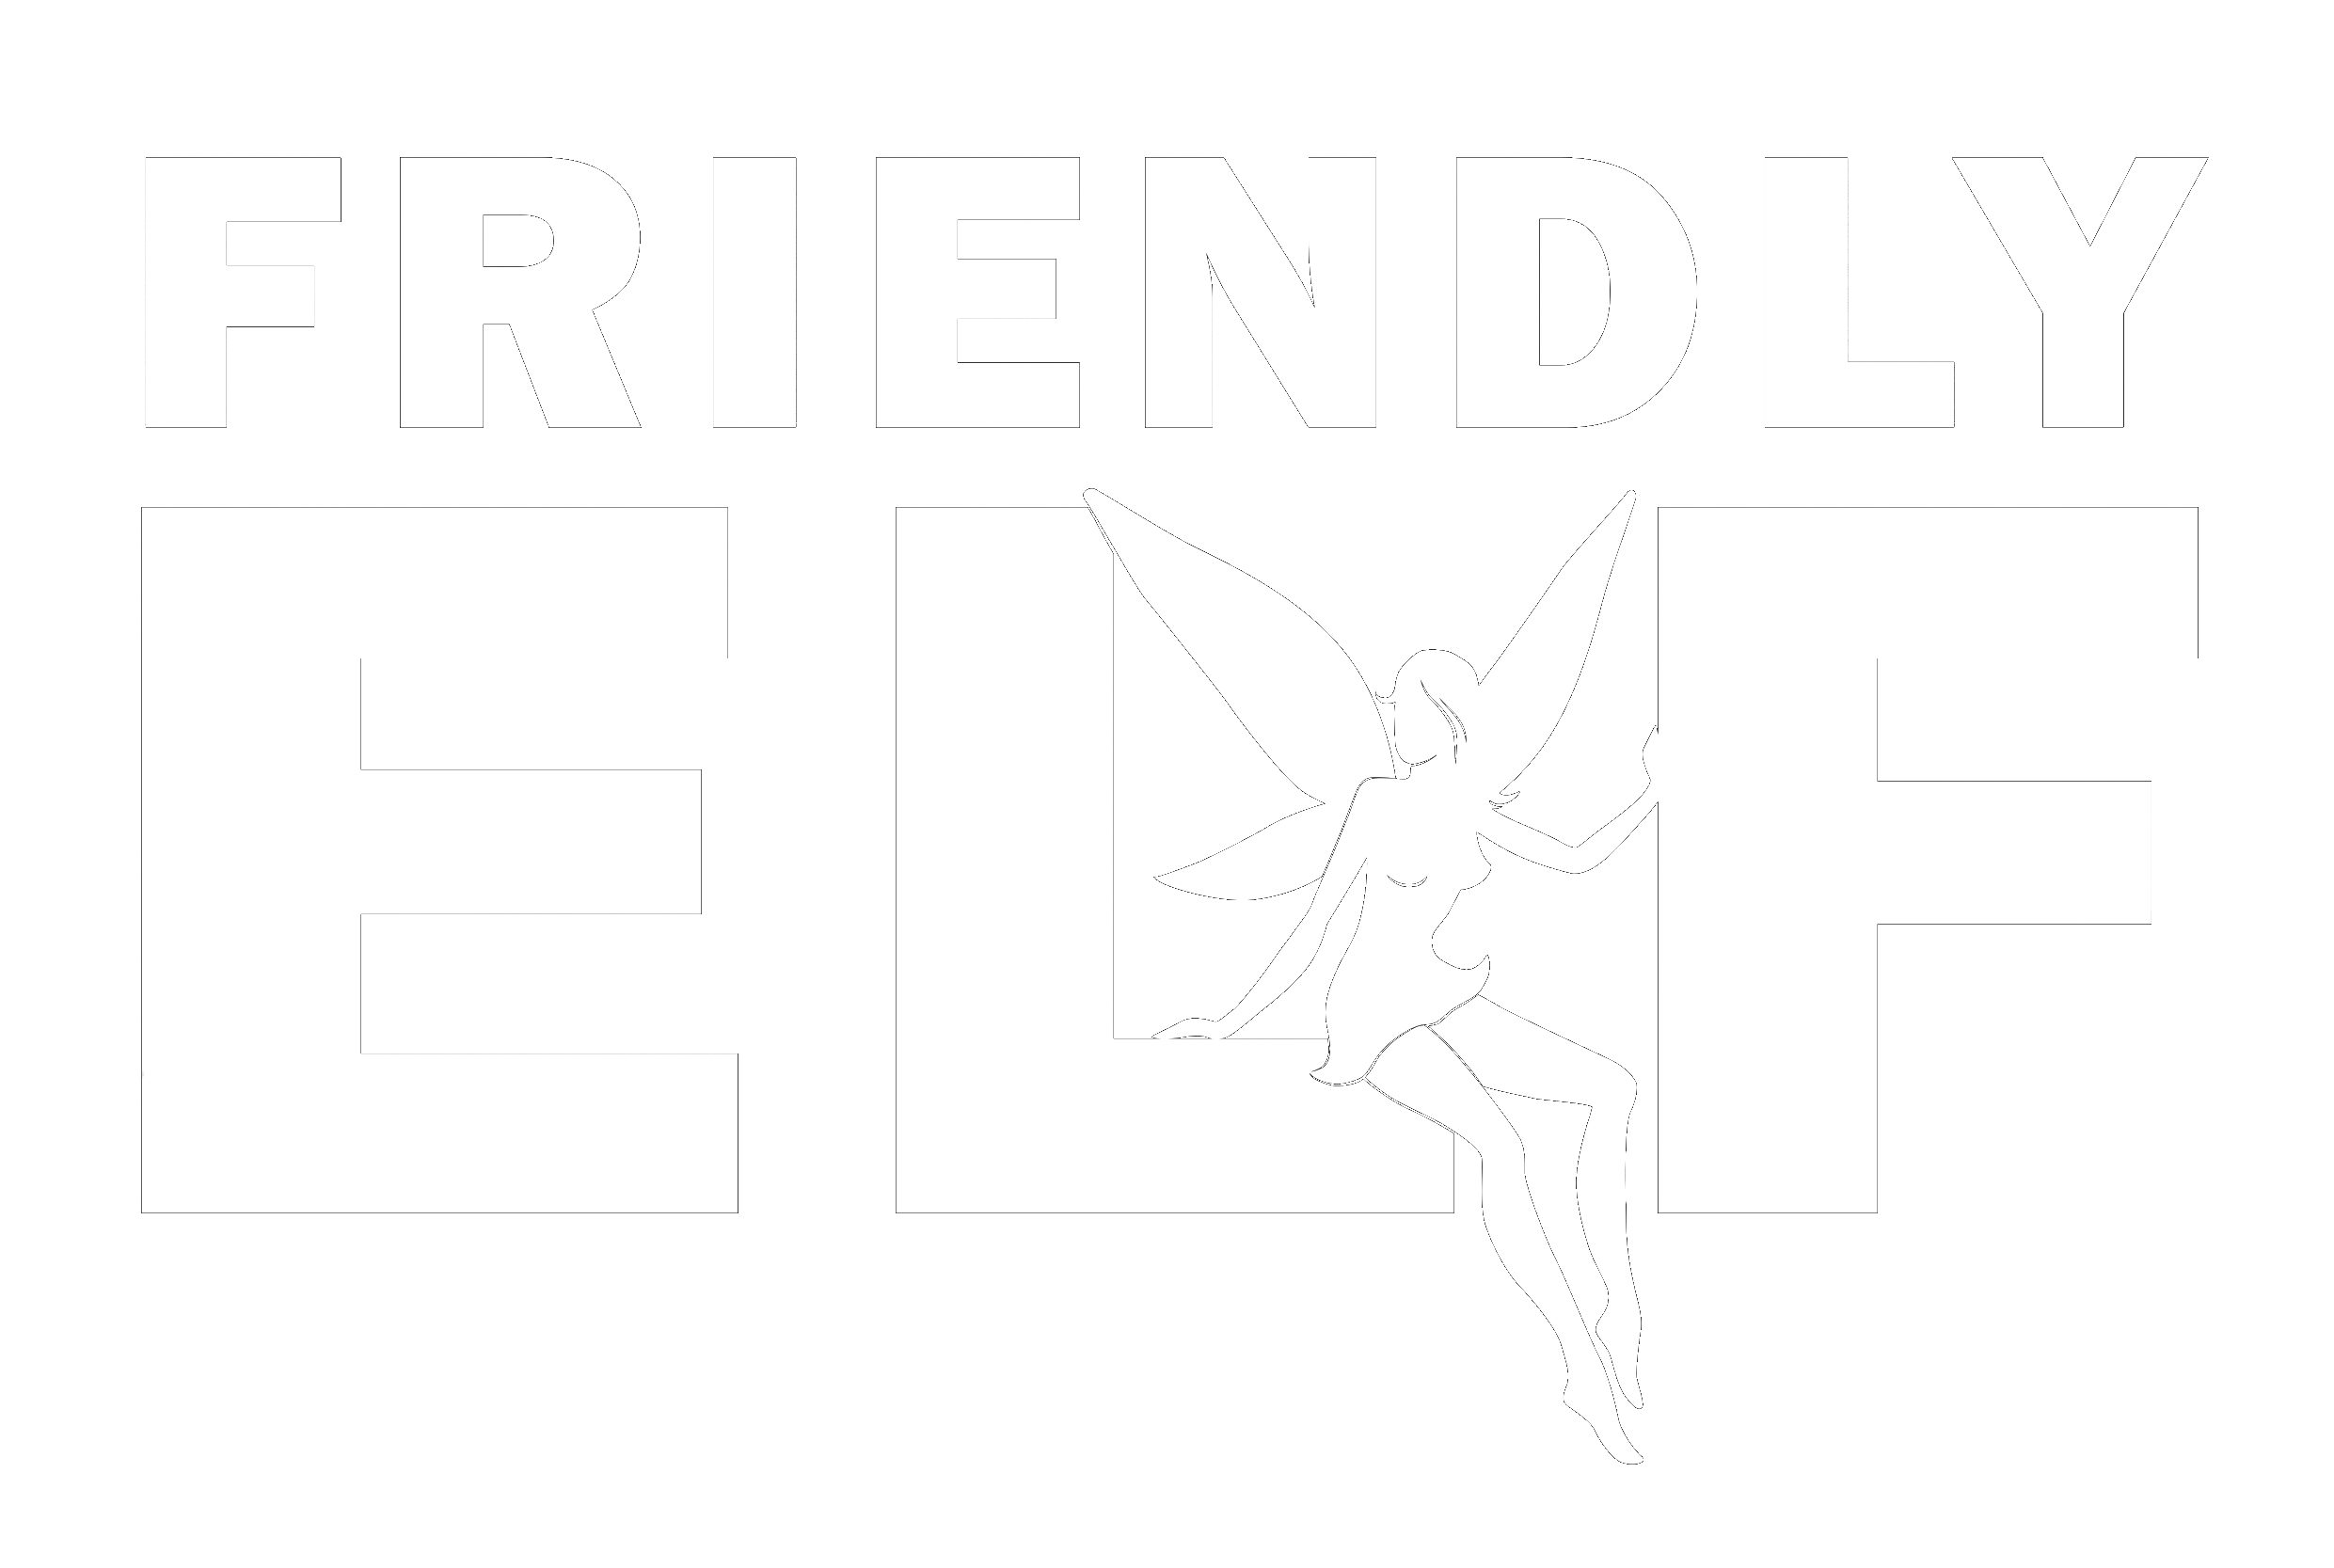 Friendly Elf Band Heilbronn Stuttgart Logo Gross